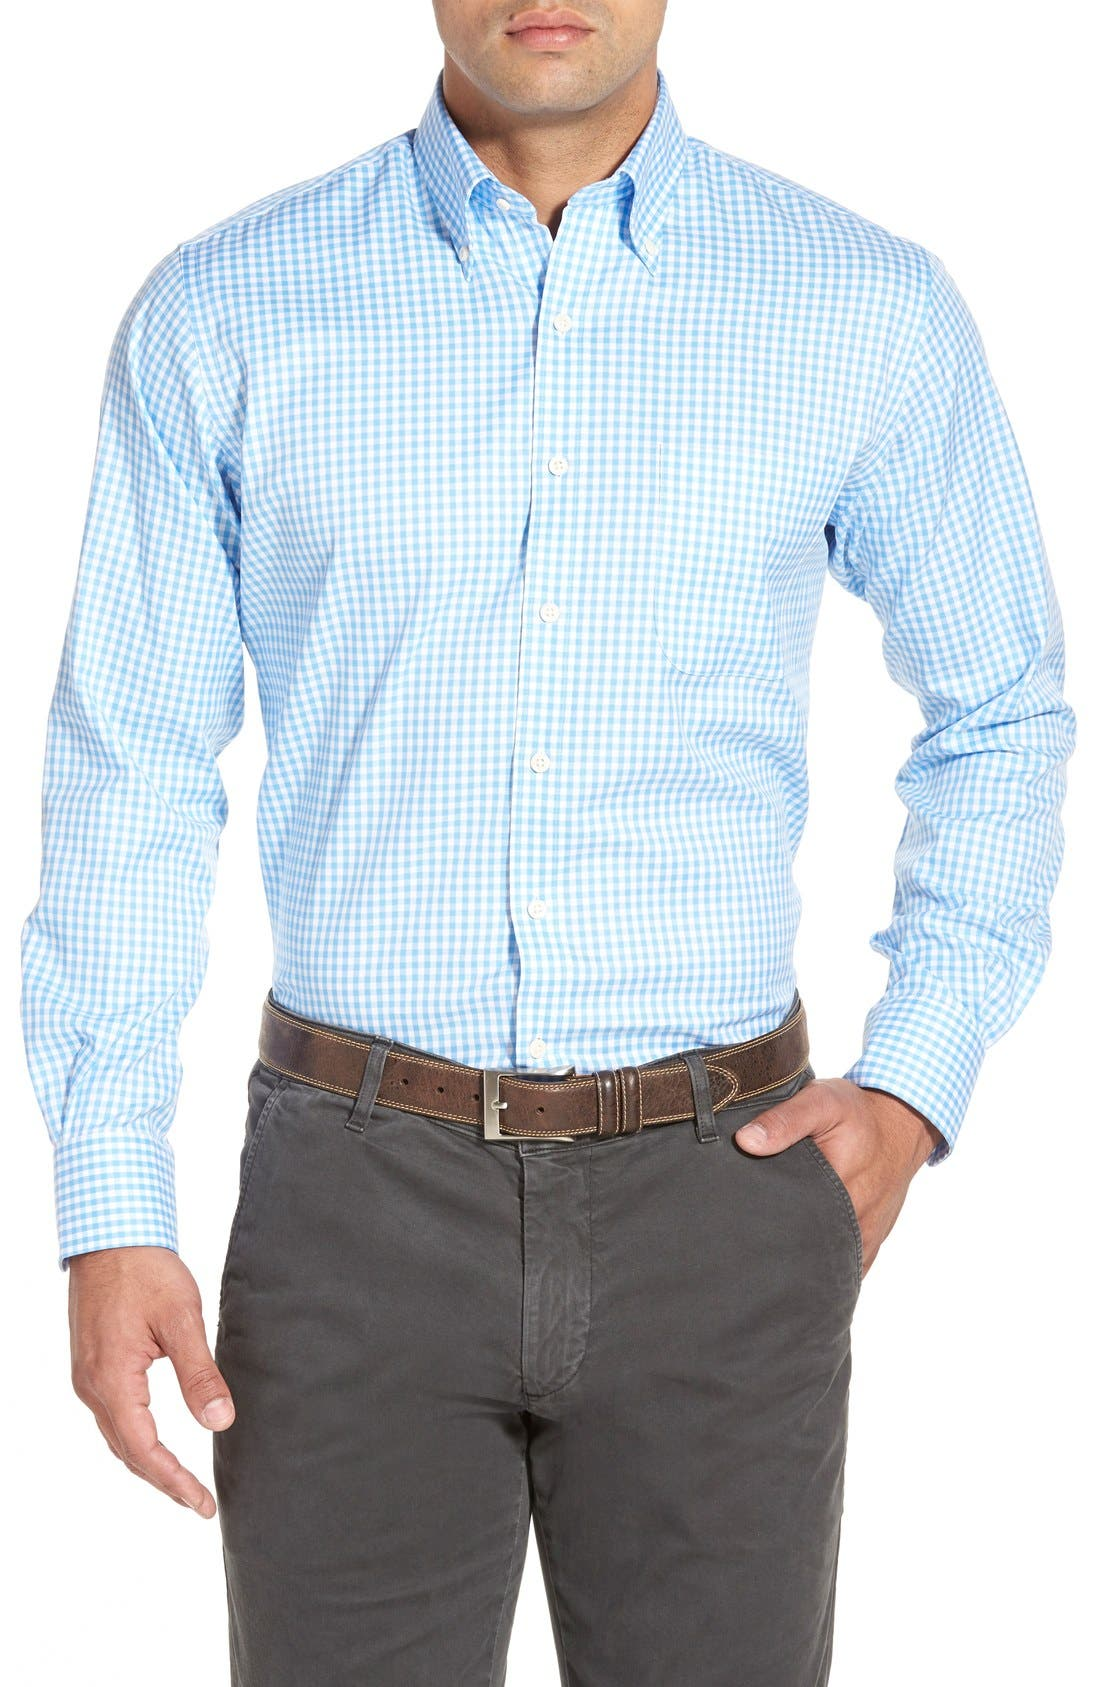 PETER MILLAR 'Nanoluxe' Regular Fit Wrinkle Resistant Twill